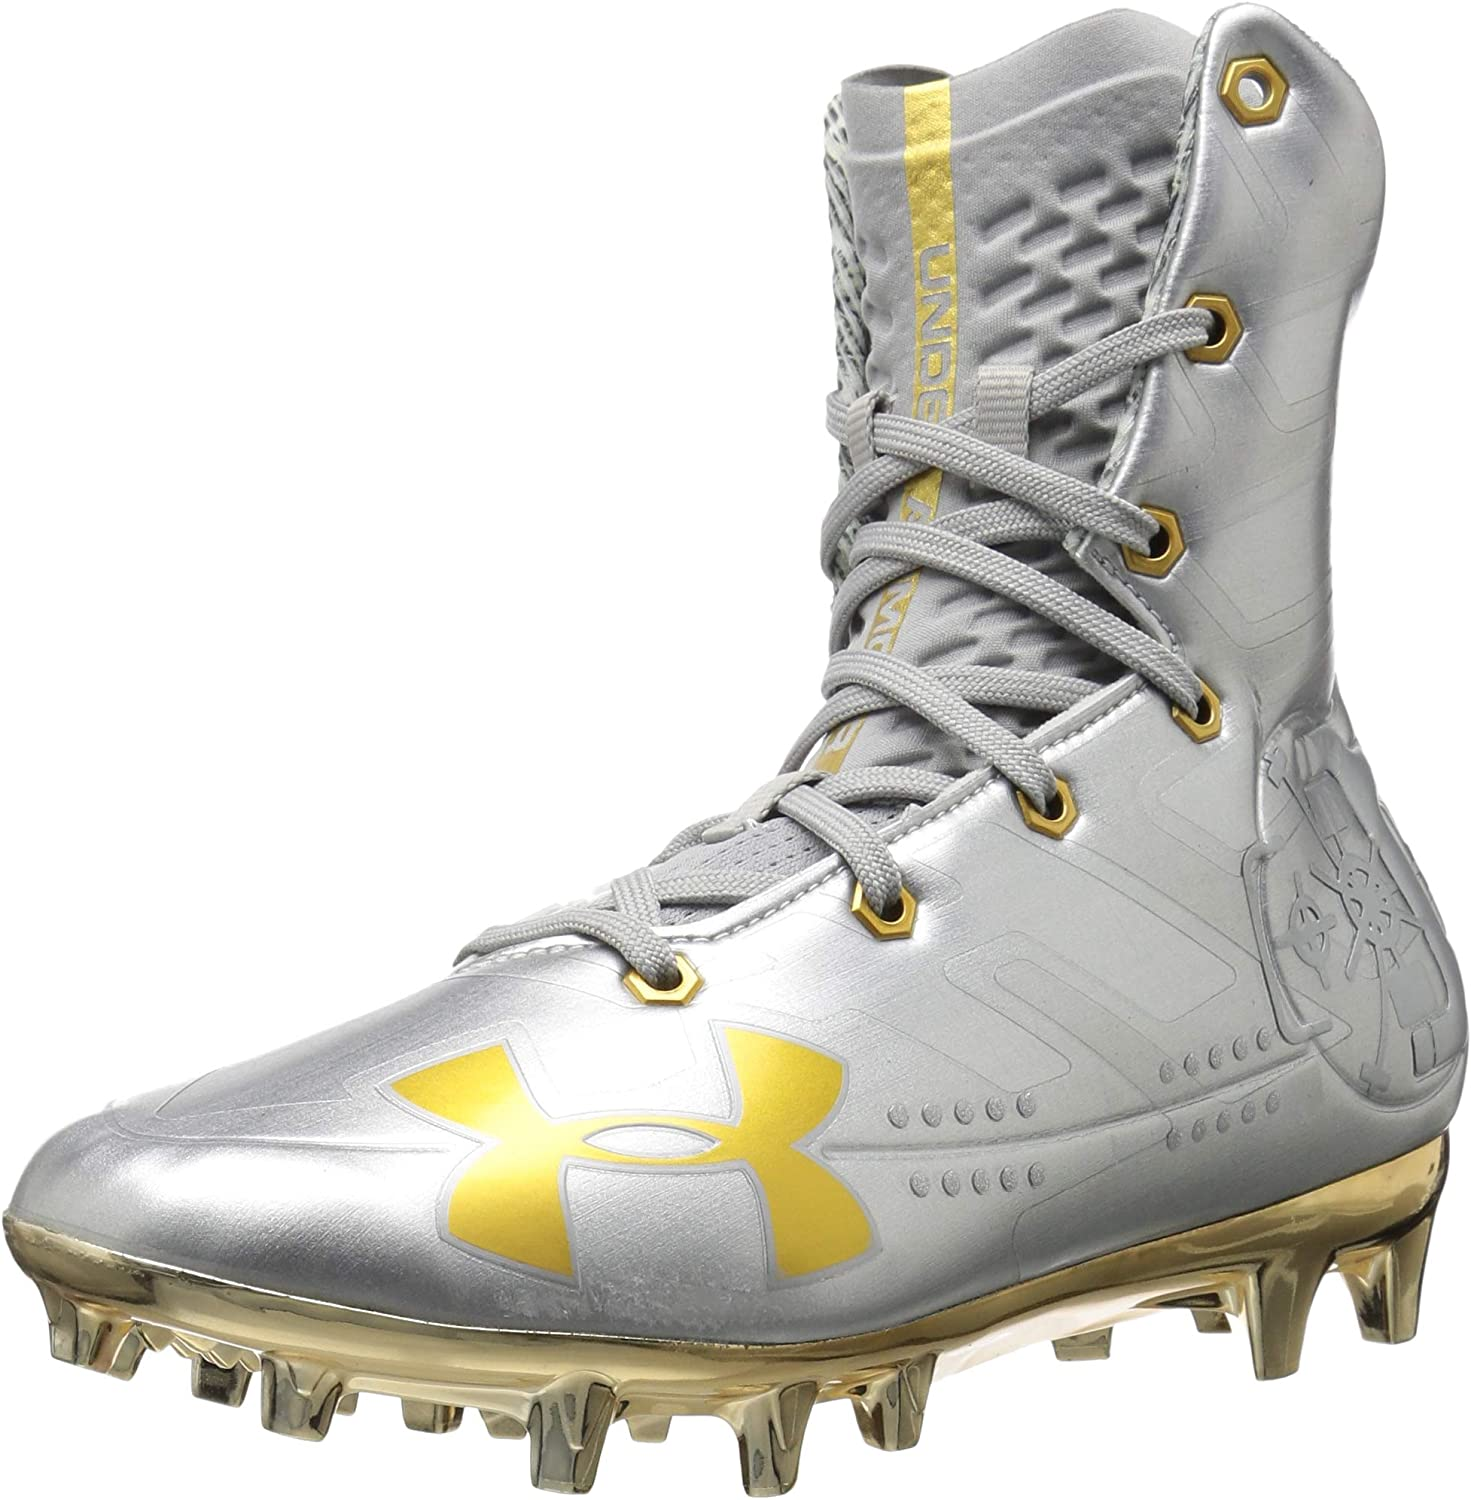 Details about  /New Under Armour Highlight MC Limited Edition USA Football Cleats 3021191-600